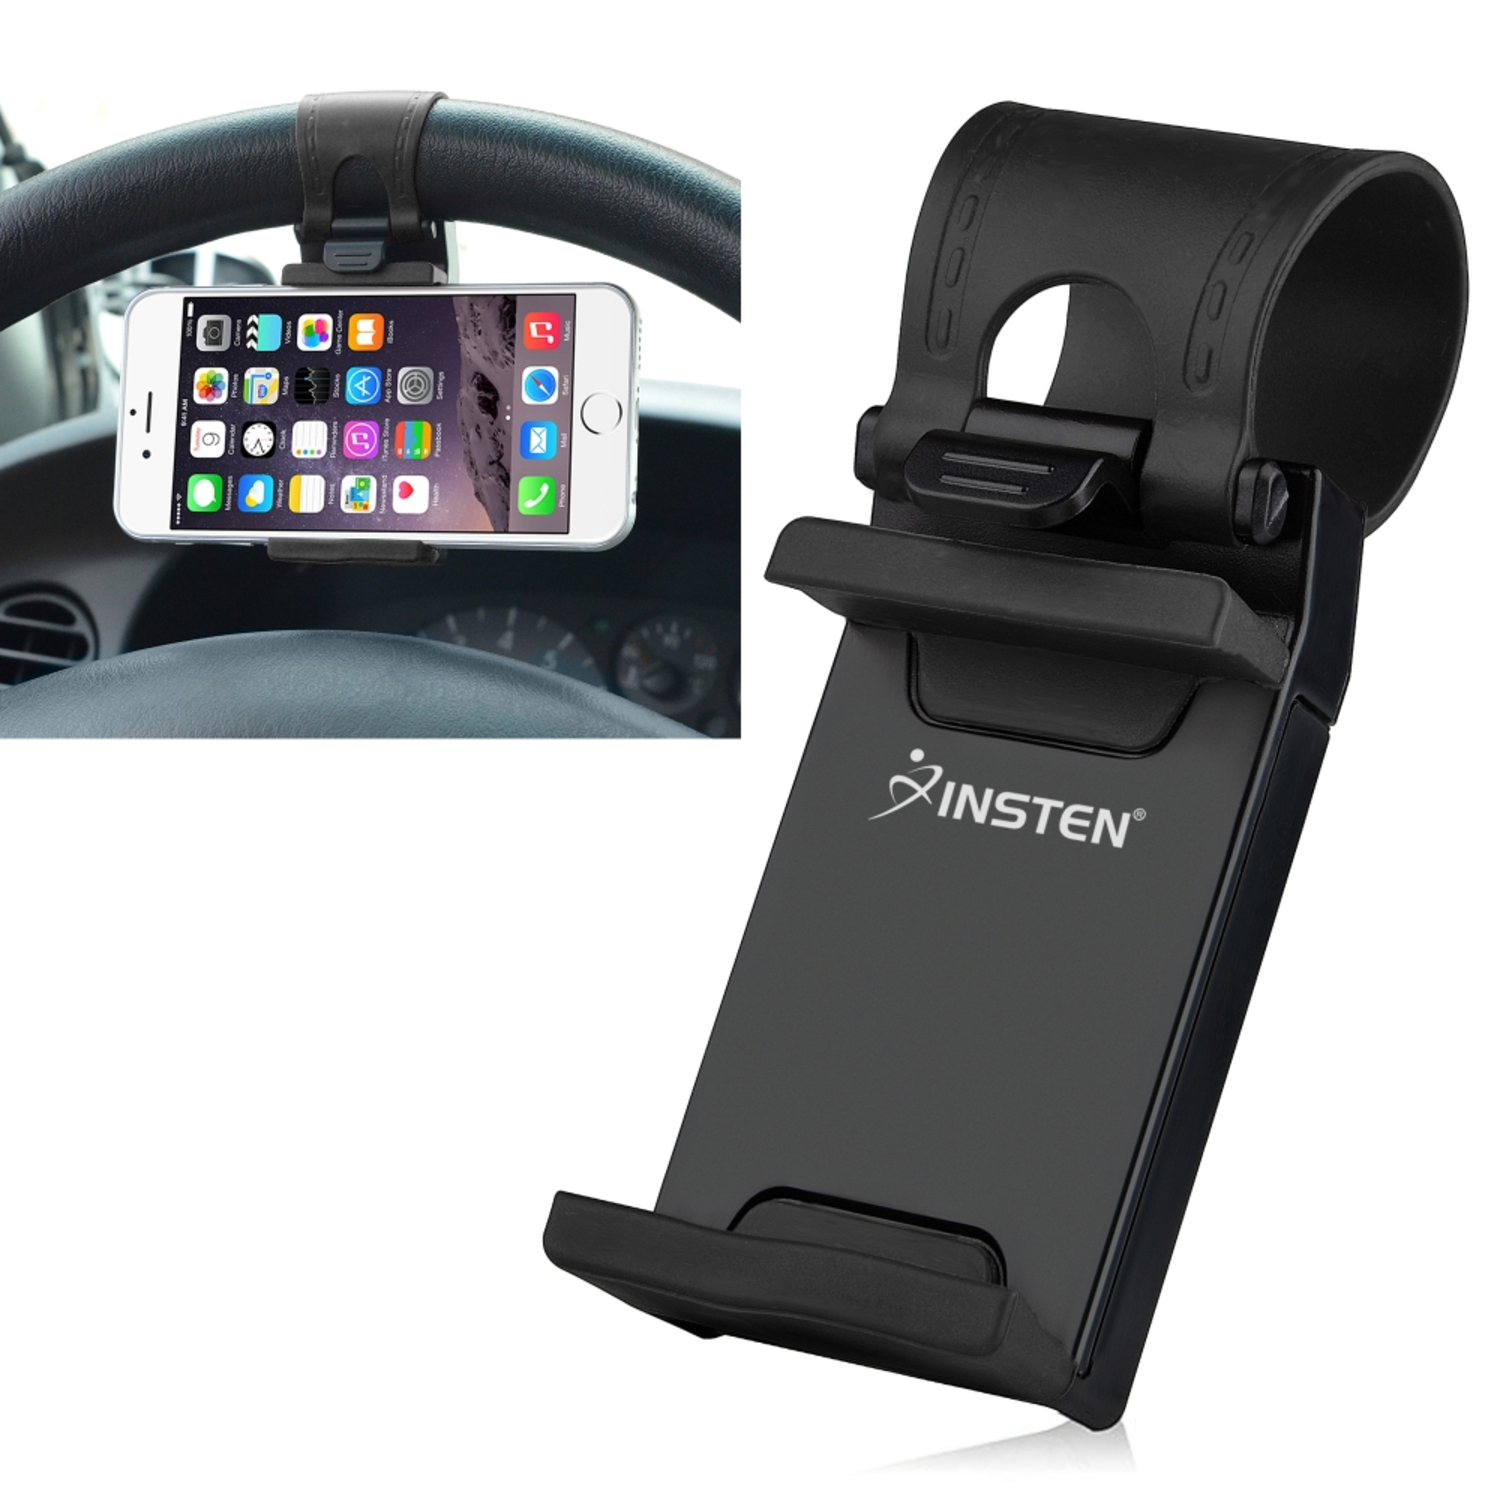 1c5eda797200c SOAIY 3-in-1 Cigarette Lighter Phone Holder Cradle Gooseneck Car Mount  Charger with Dual USB 3.1A Charging Ports for iPhone X 8 8 Plus 7 7 Plus 6  6s Plus